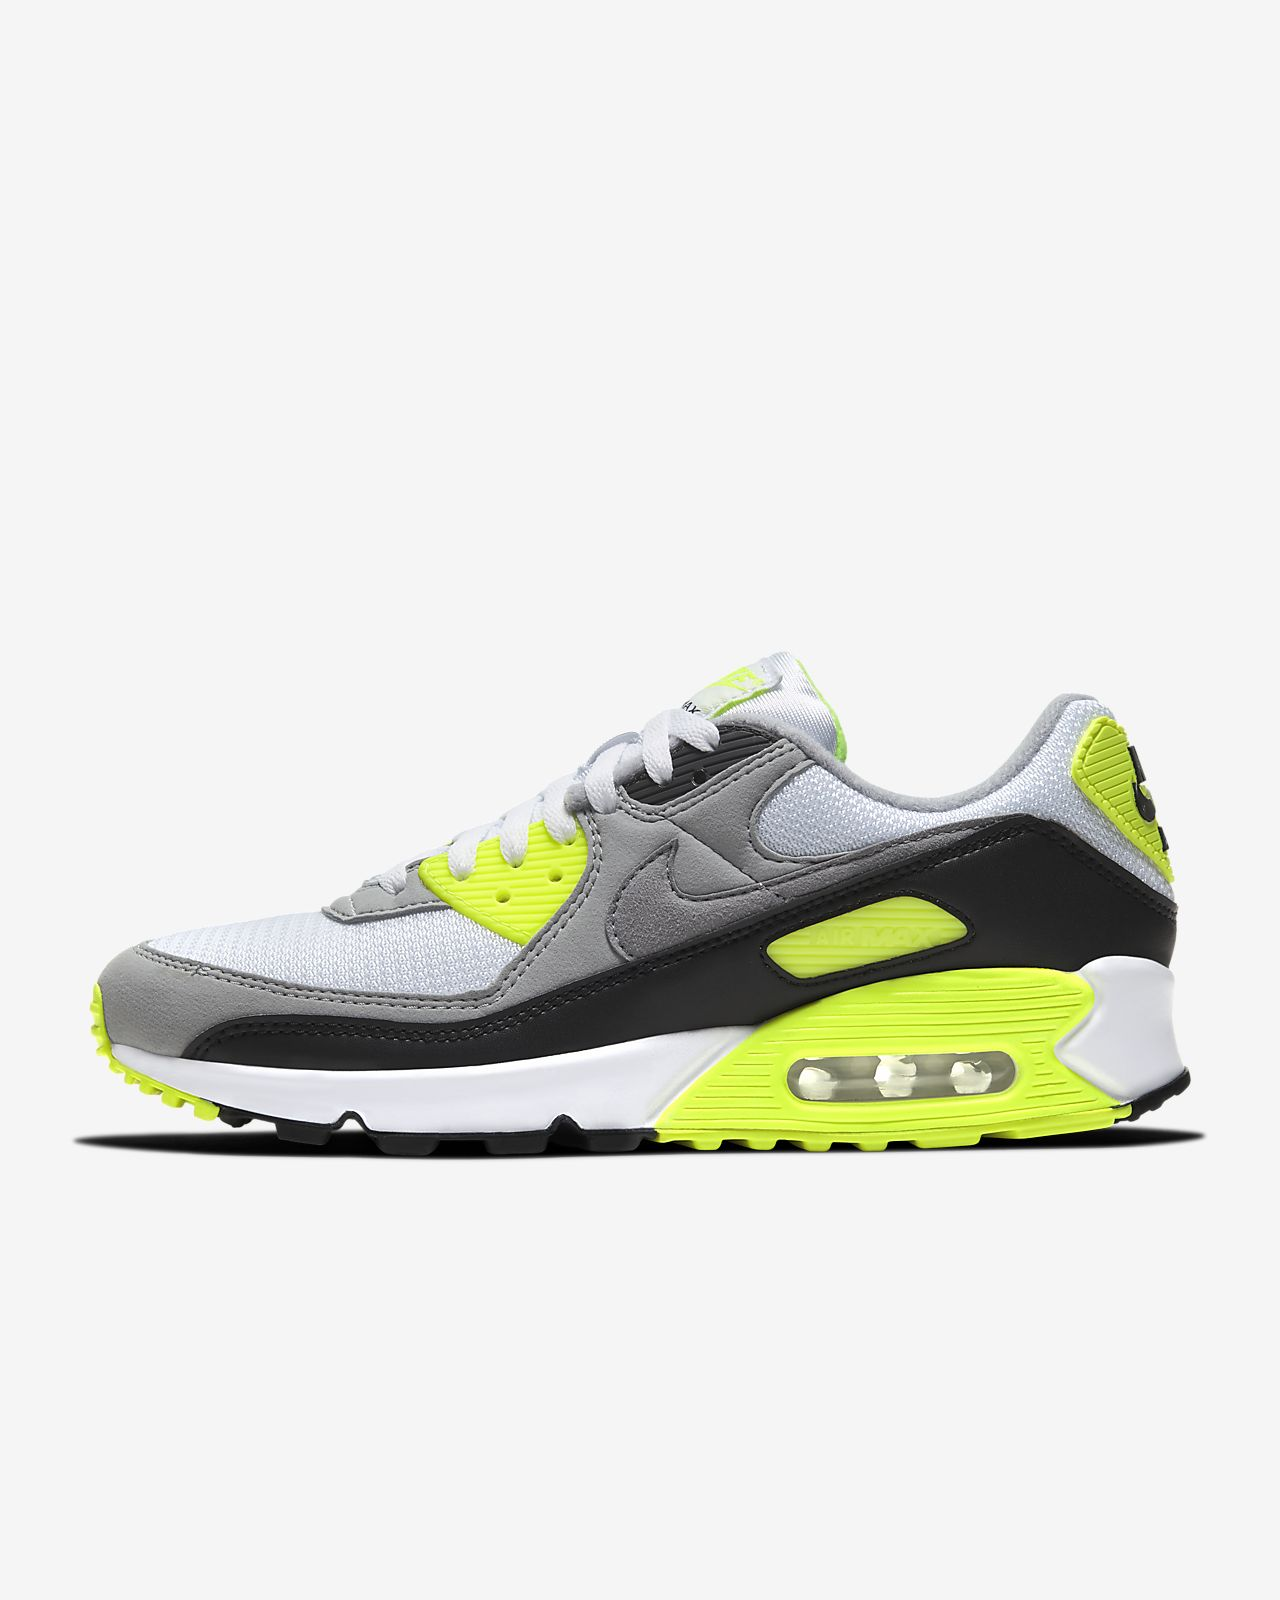 Nike Air Max 90 Premium | White & Black | 700155 103